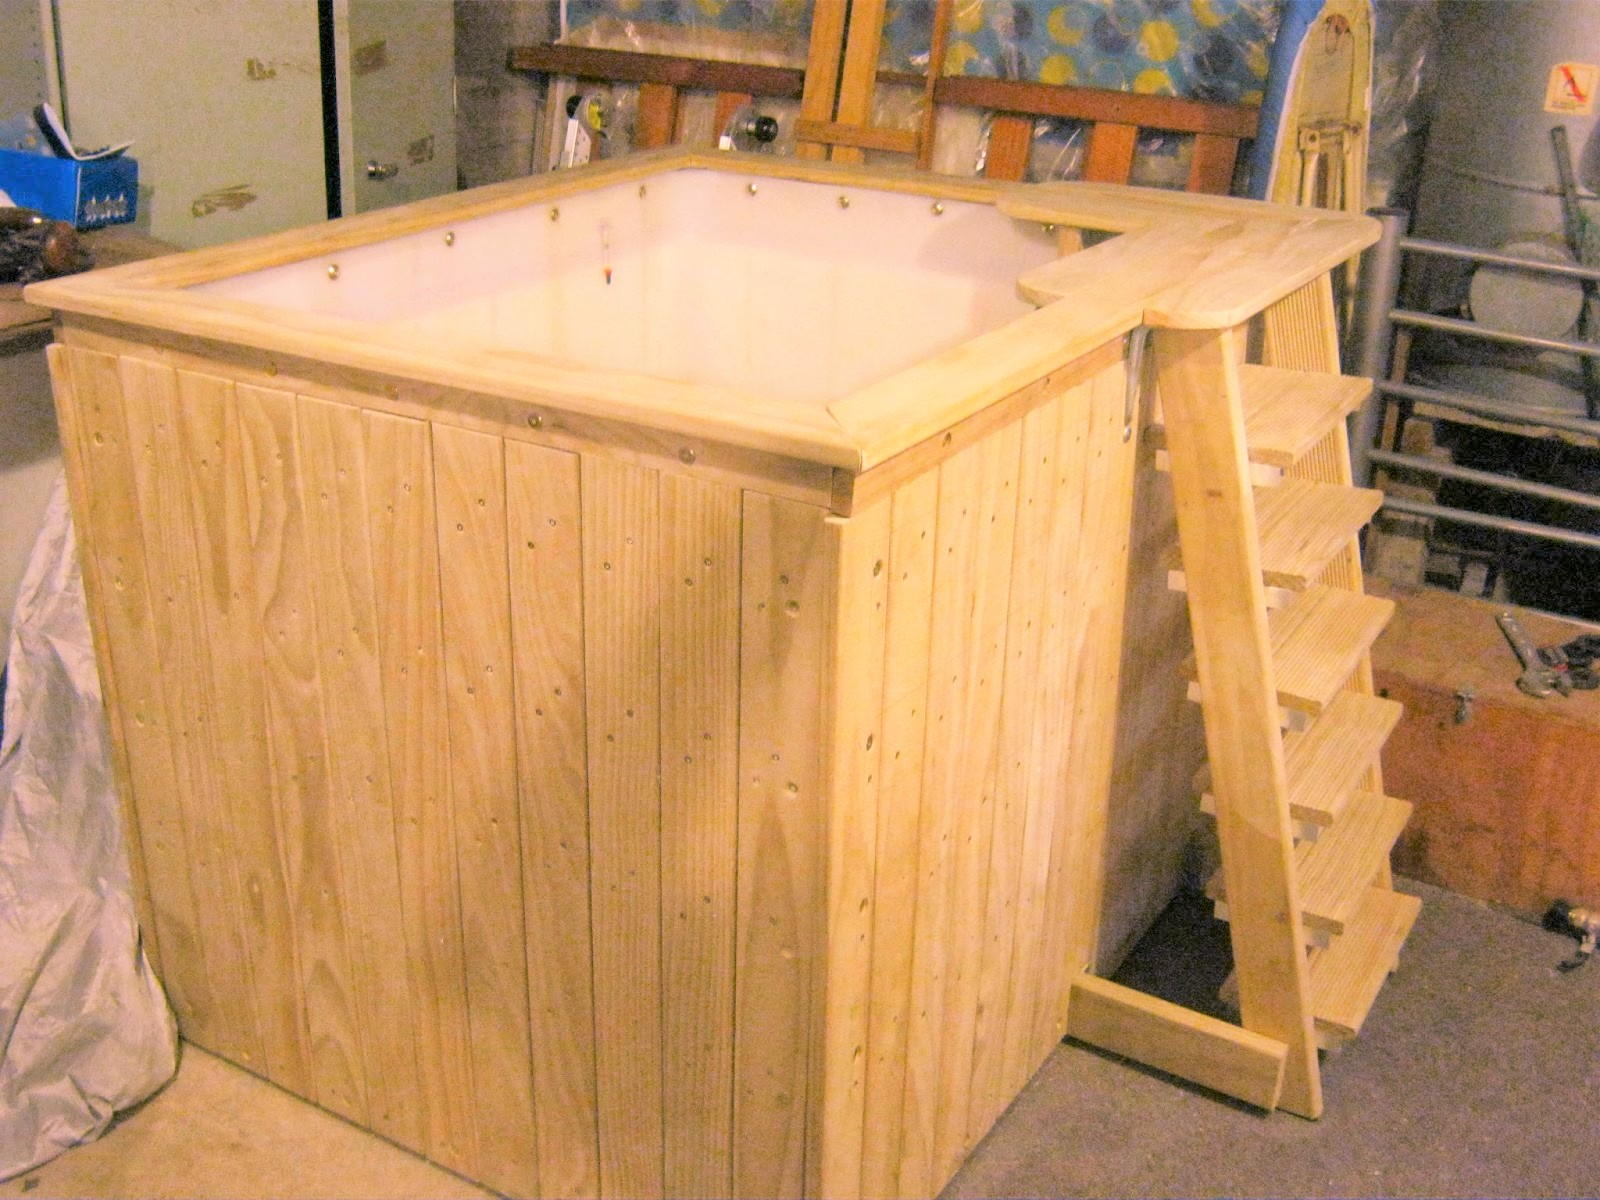 IBC Tote Hot Tubs: DIY Personal-Sized Fun for Less Than $200 - Easy ...